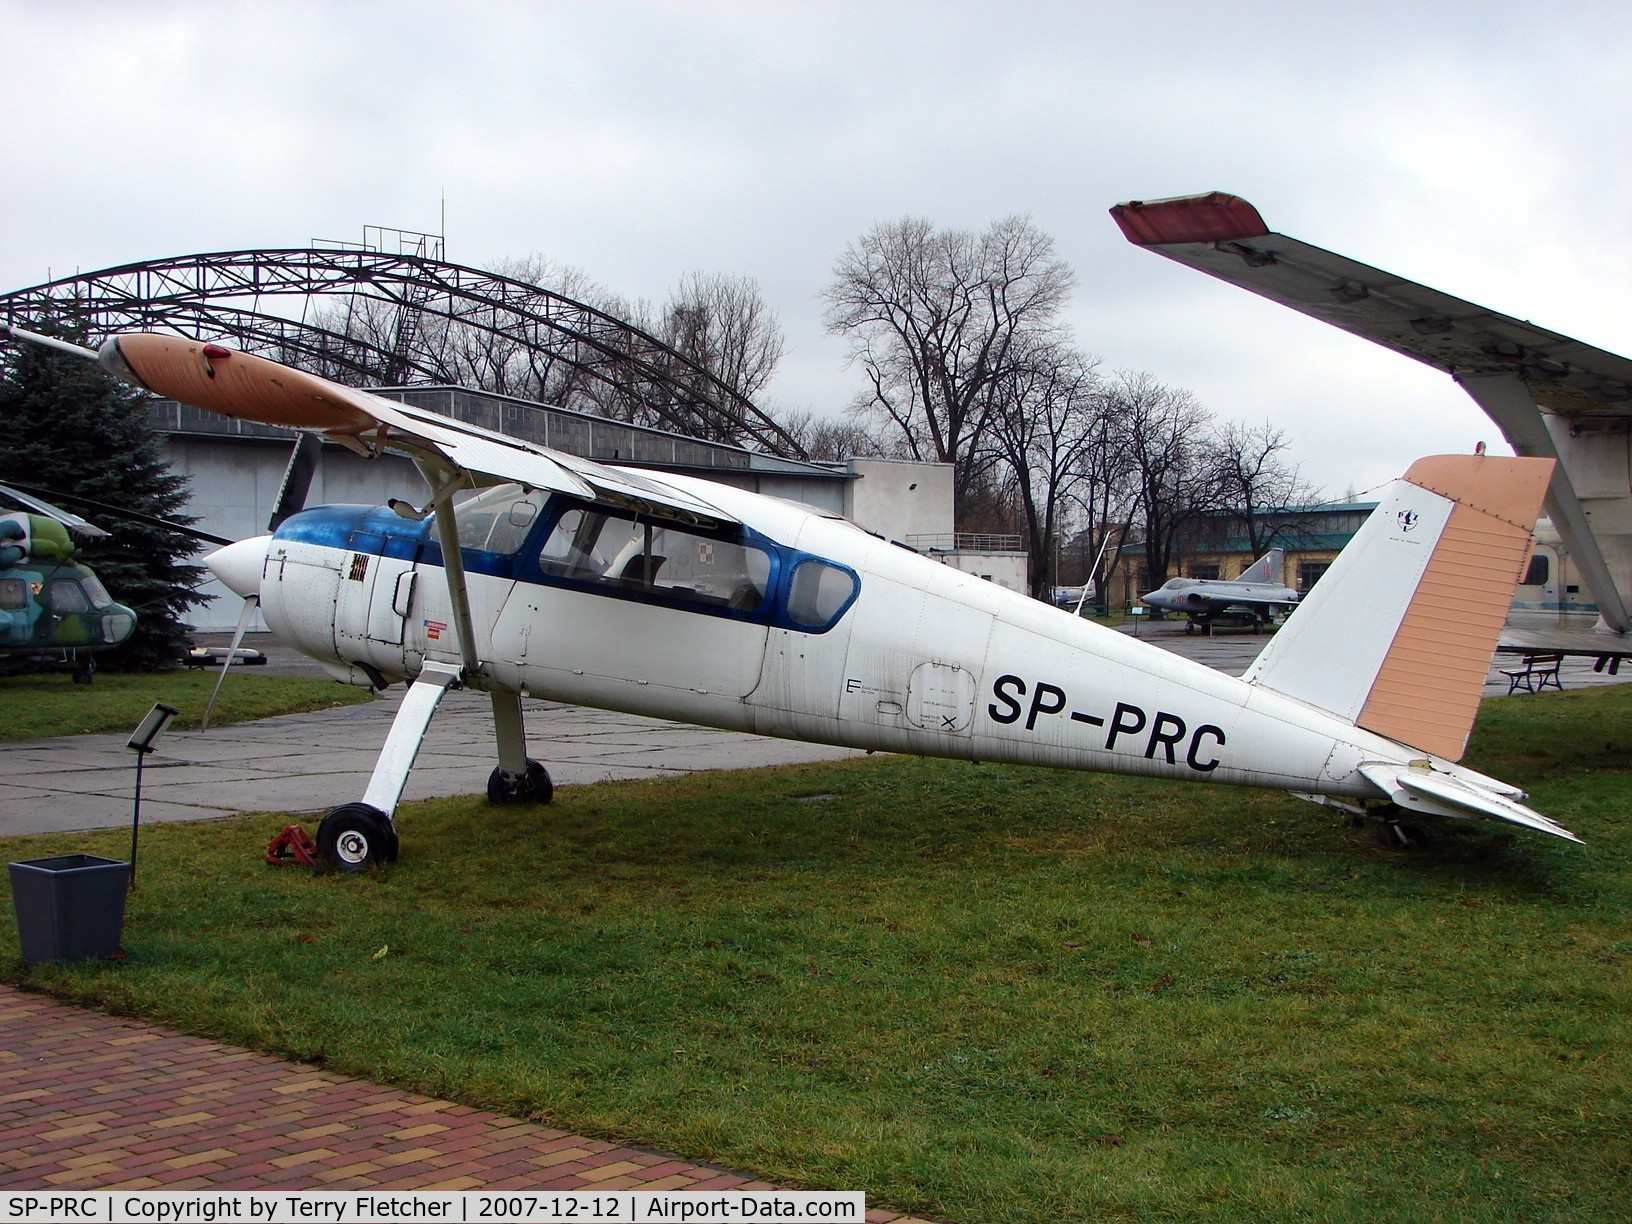 SP-PRC, 1989 PZL-Okecie PZL-105 Flamingo C/N Prototype, One of two prototypes preserved at the Poland Aviation Museum in Krakow